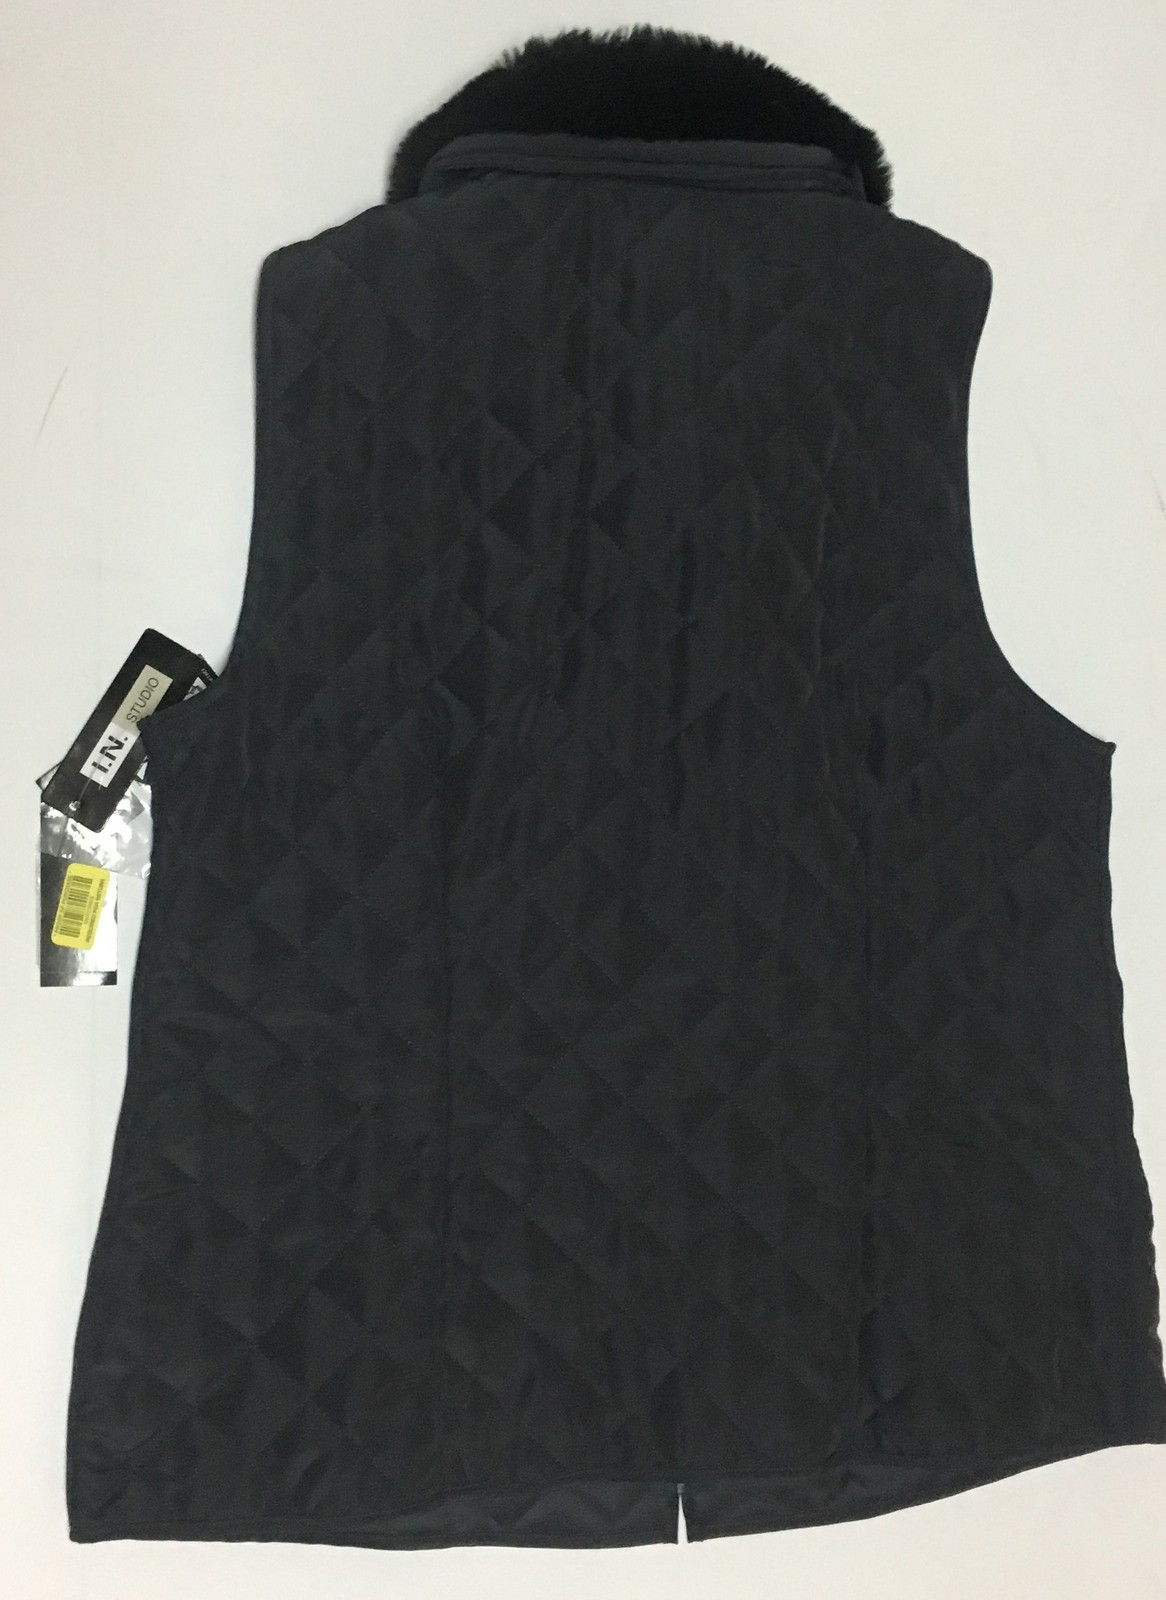 I.N. Studio Charcoal Brown Sleeveless Vest NWT Removable Fur Collar Sz L